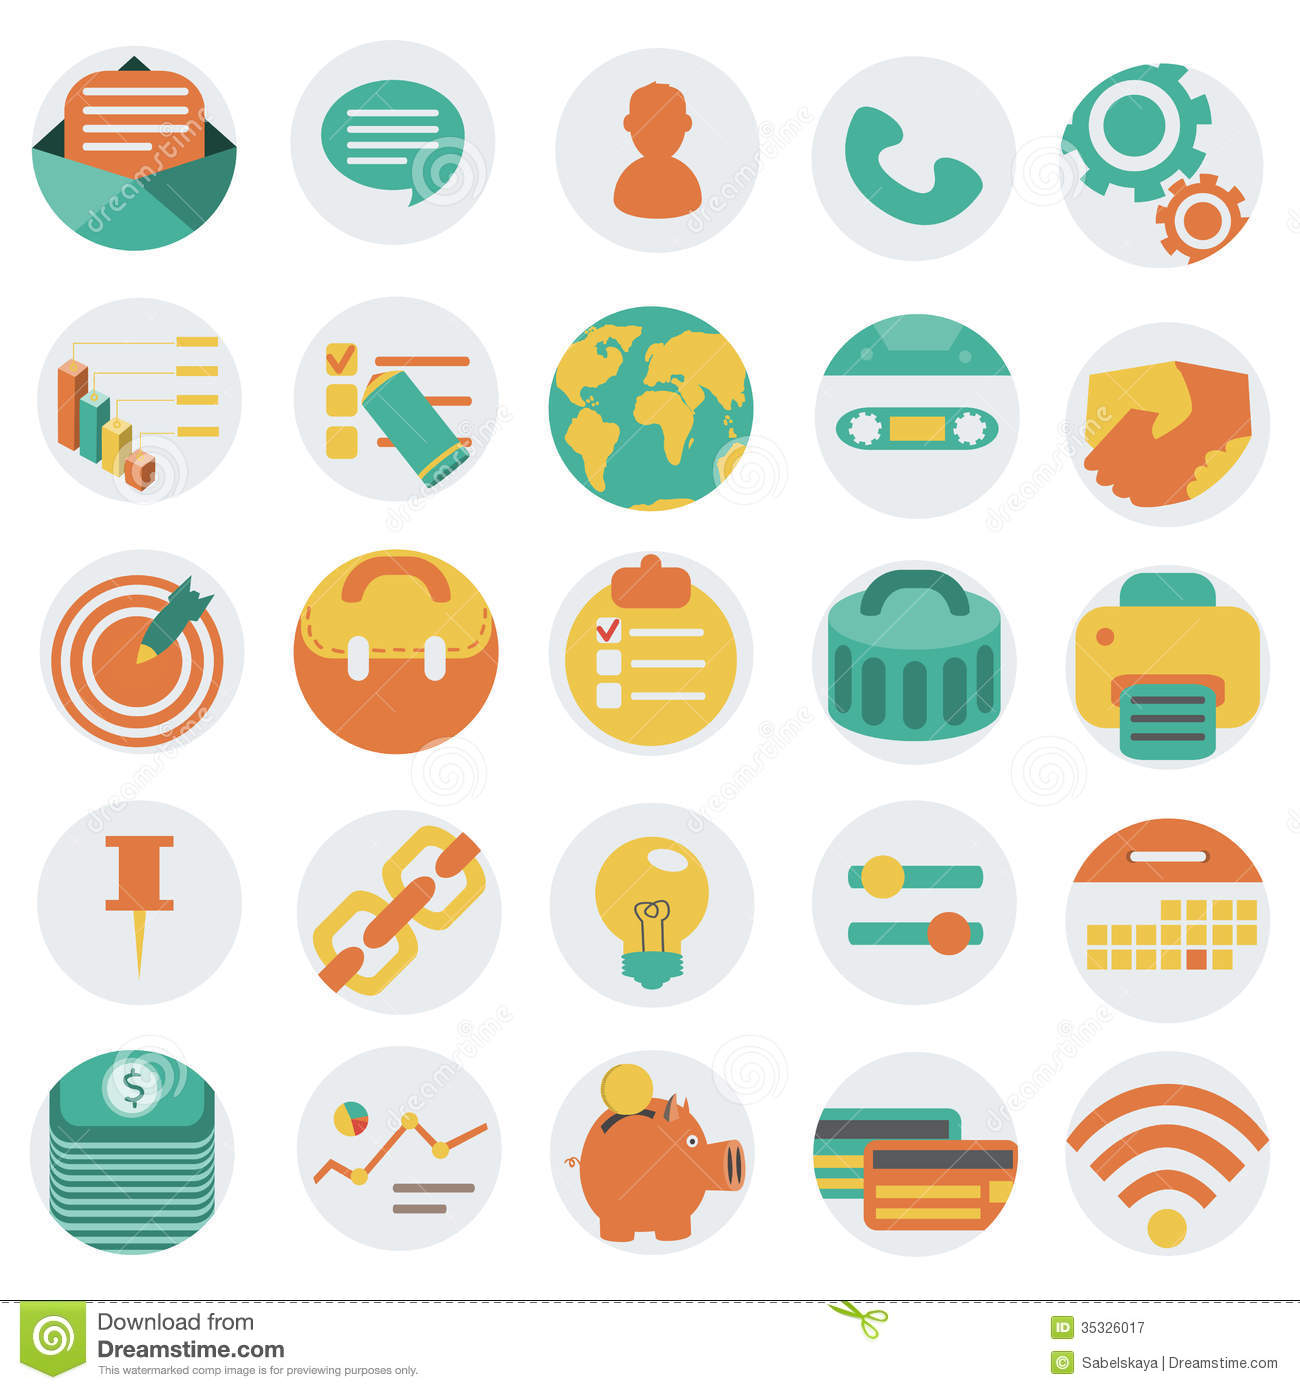 18 Flat Business Vector Icons Images